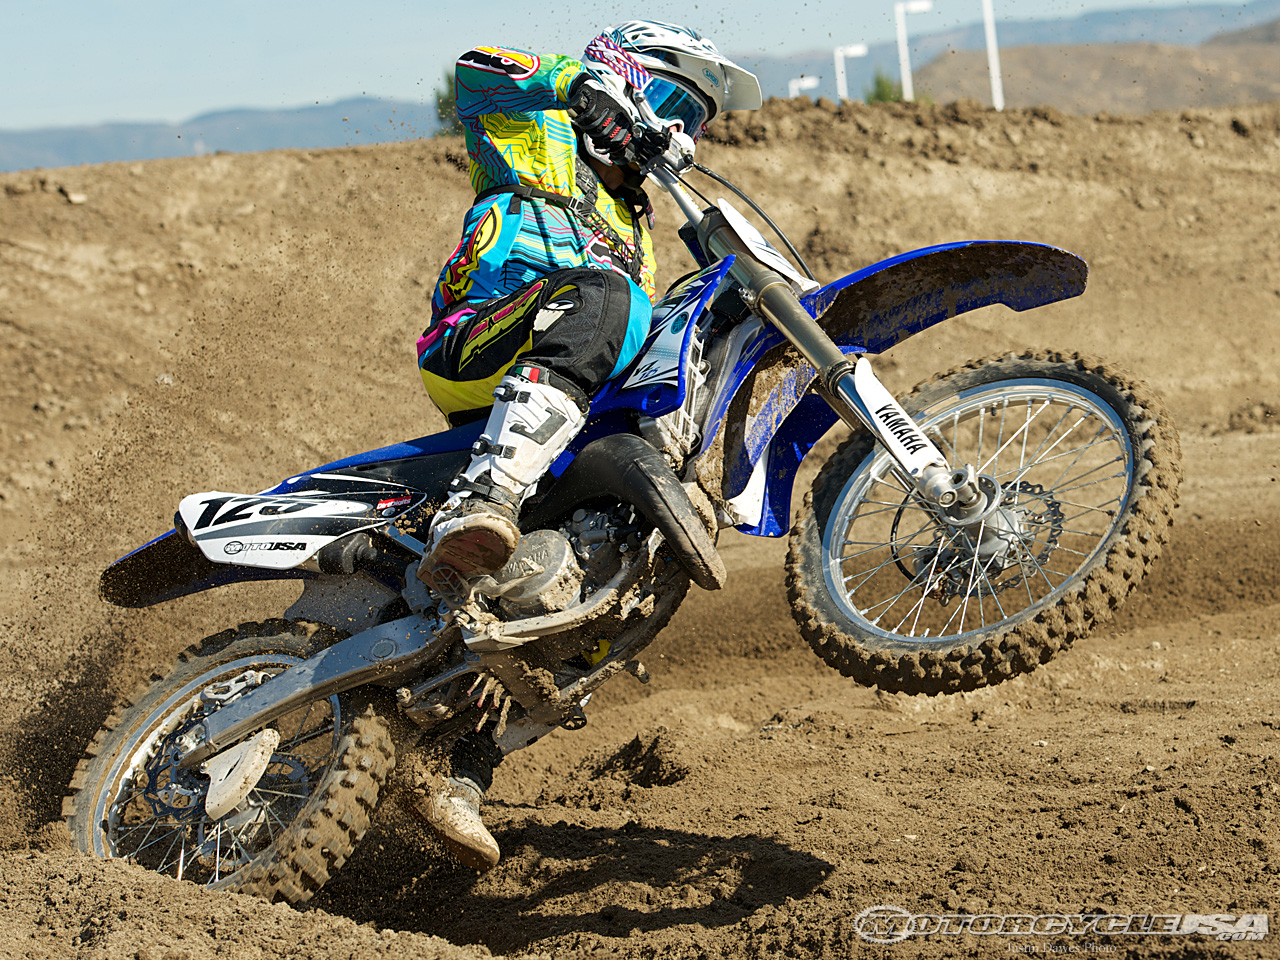 2003 YAMAHA YZ125 YZ 125 EXCELLENT CONDITION for sale on